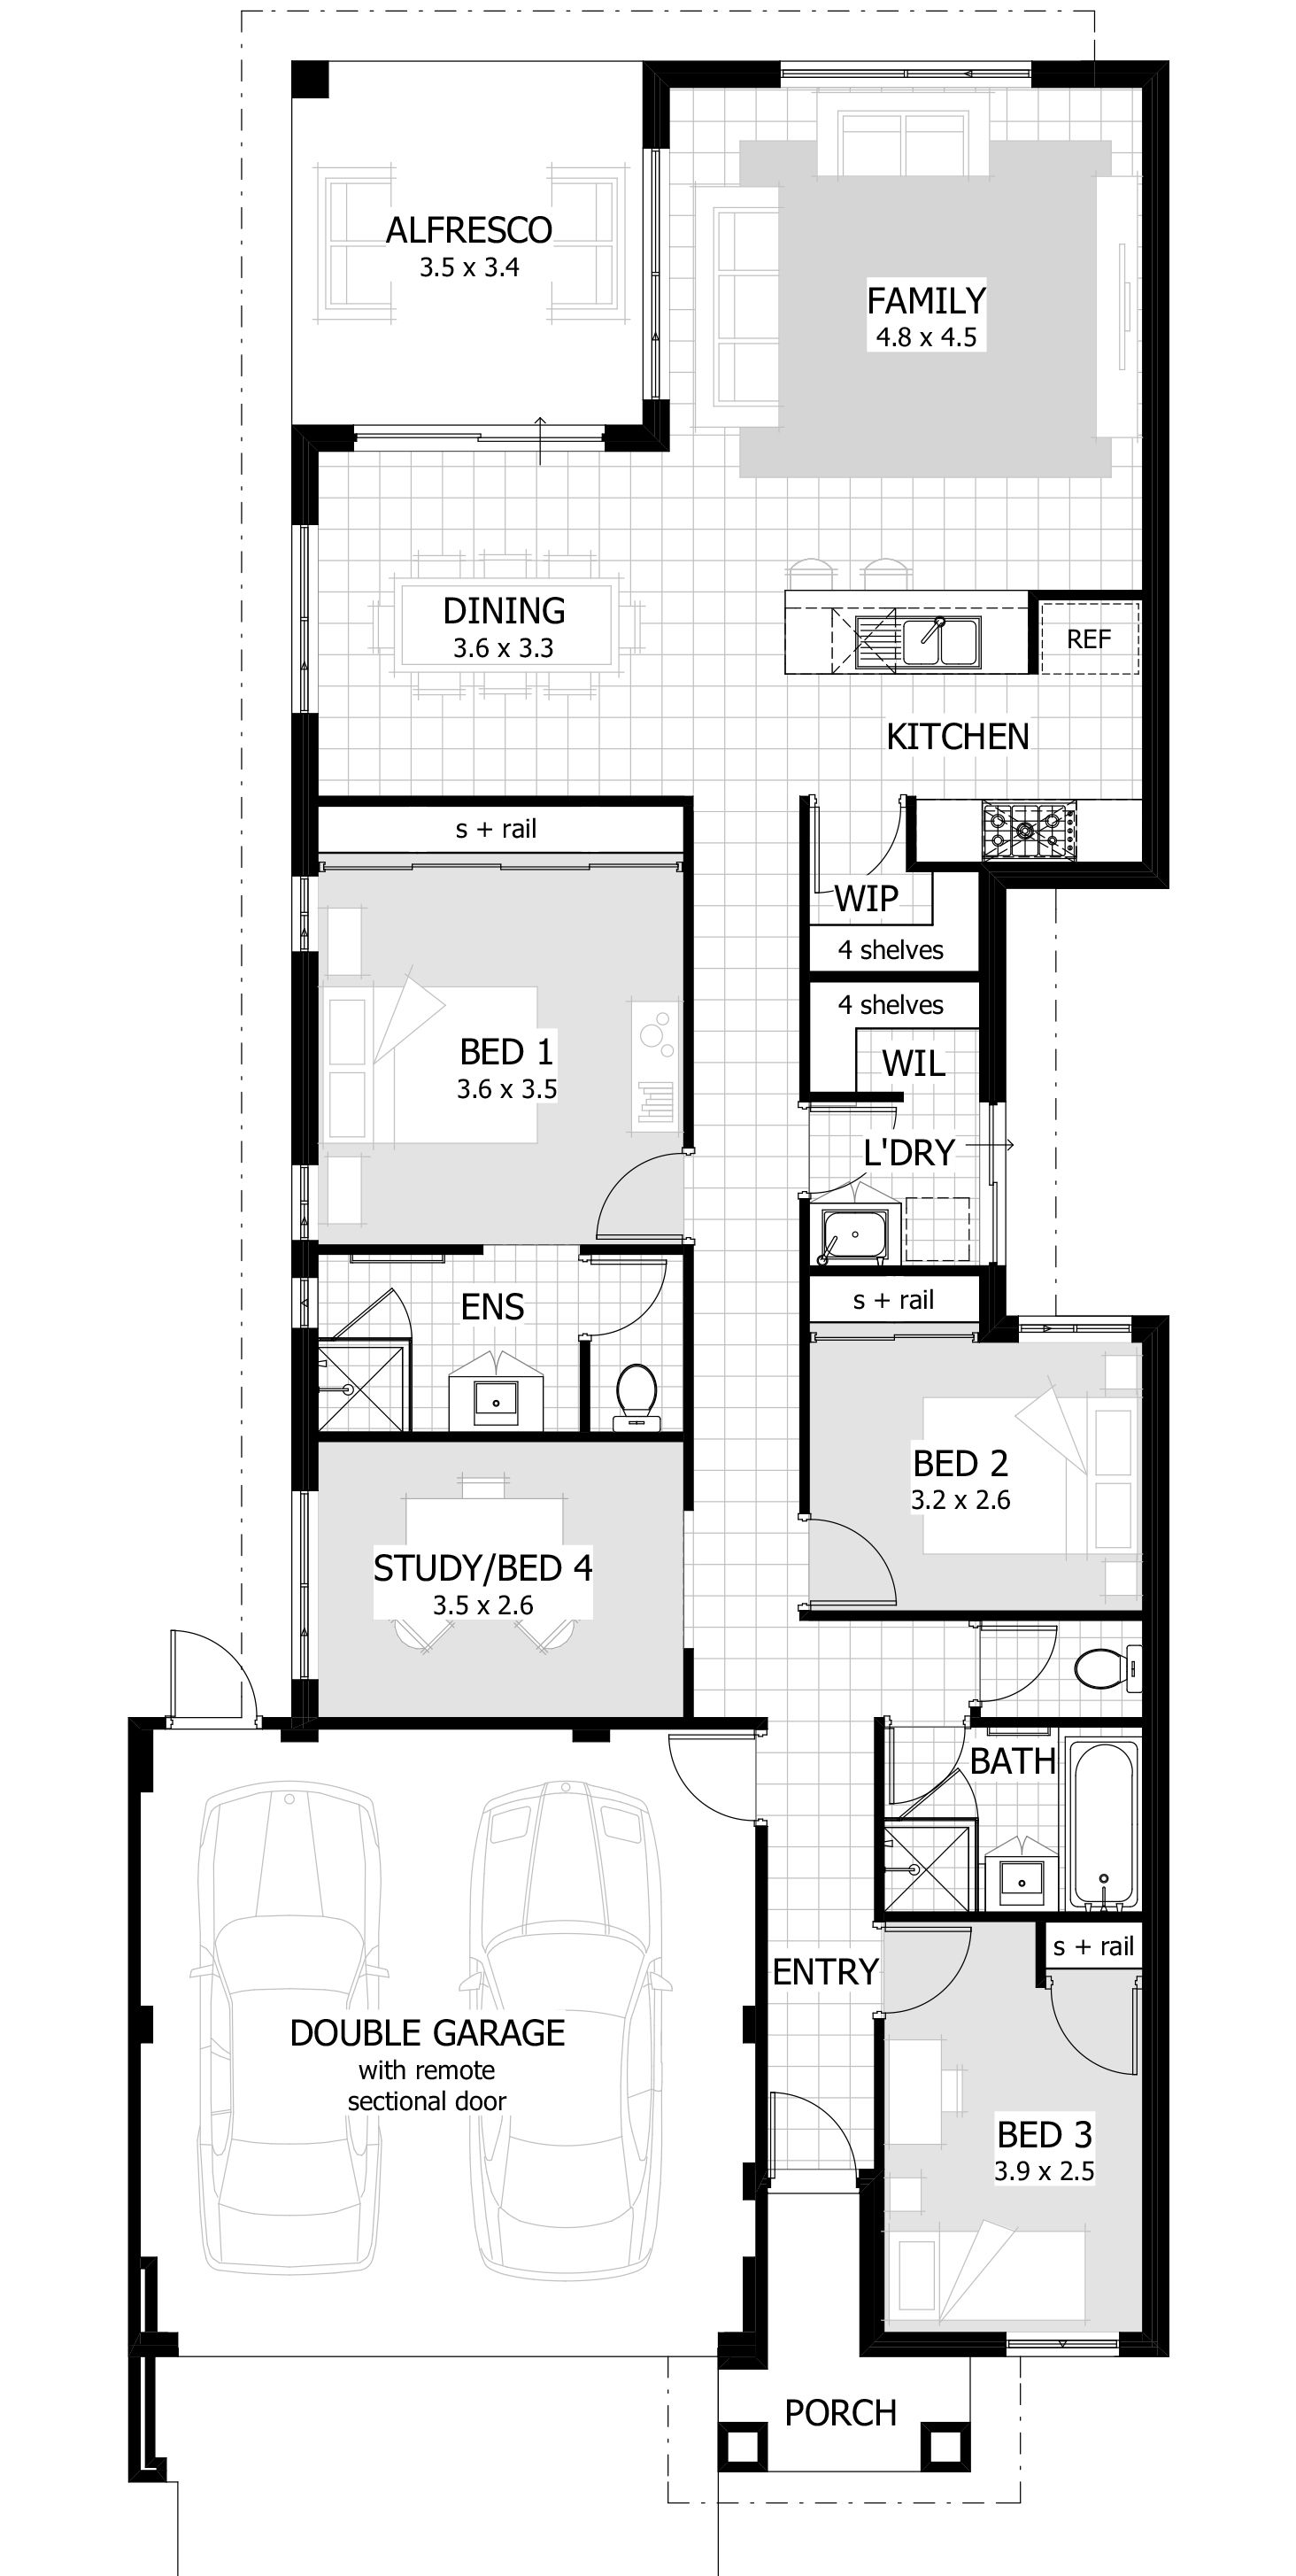 4 Bedroom House Plans & Home Designs | Celebration Homes | For the ...